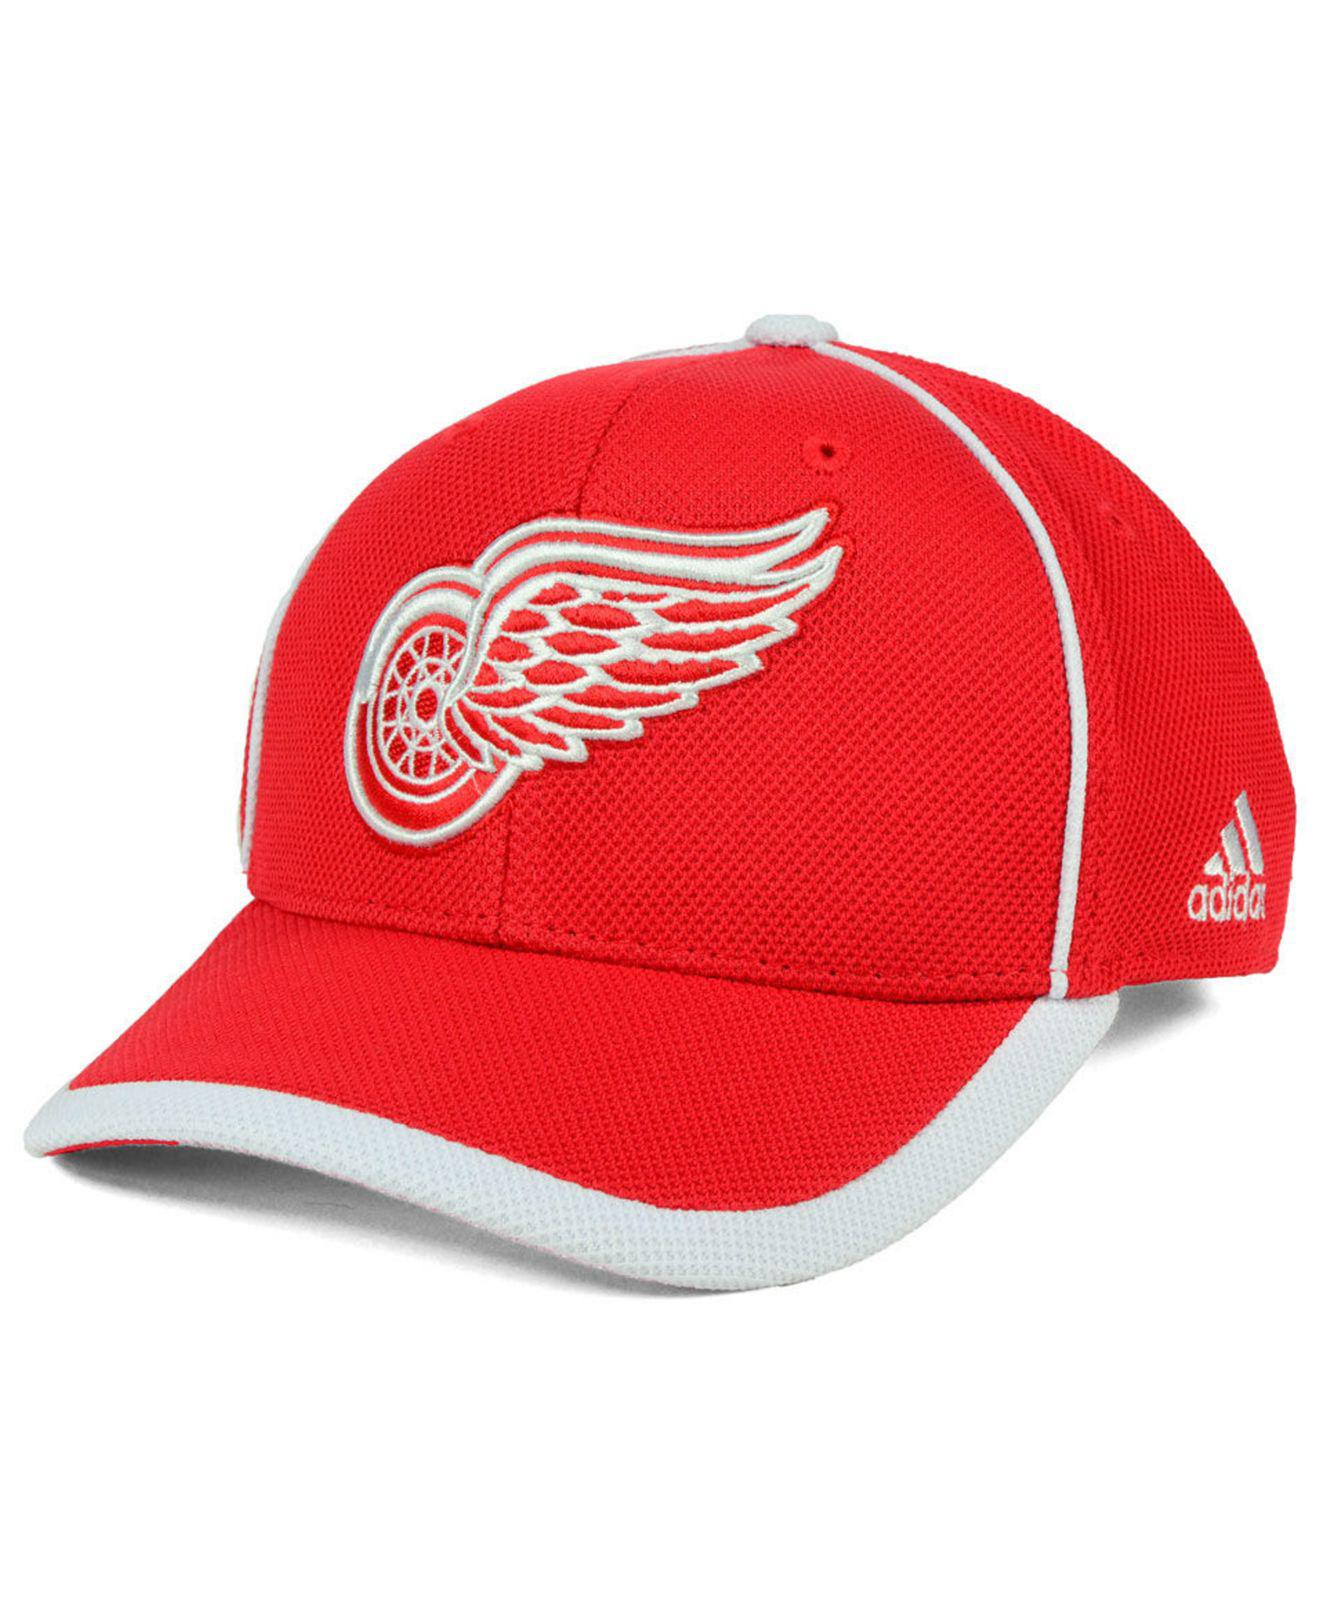 6da4a1e7371df Lyst - adidas Detroit Red Wings Clipper Adjustable Cap in Red for Men